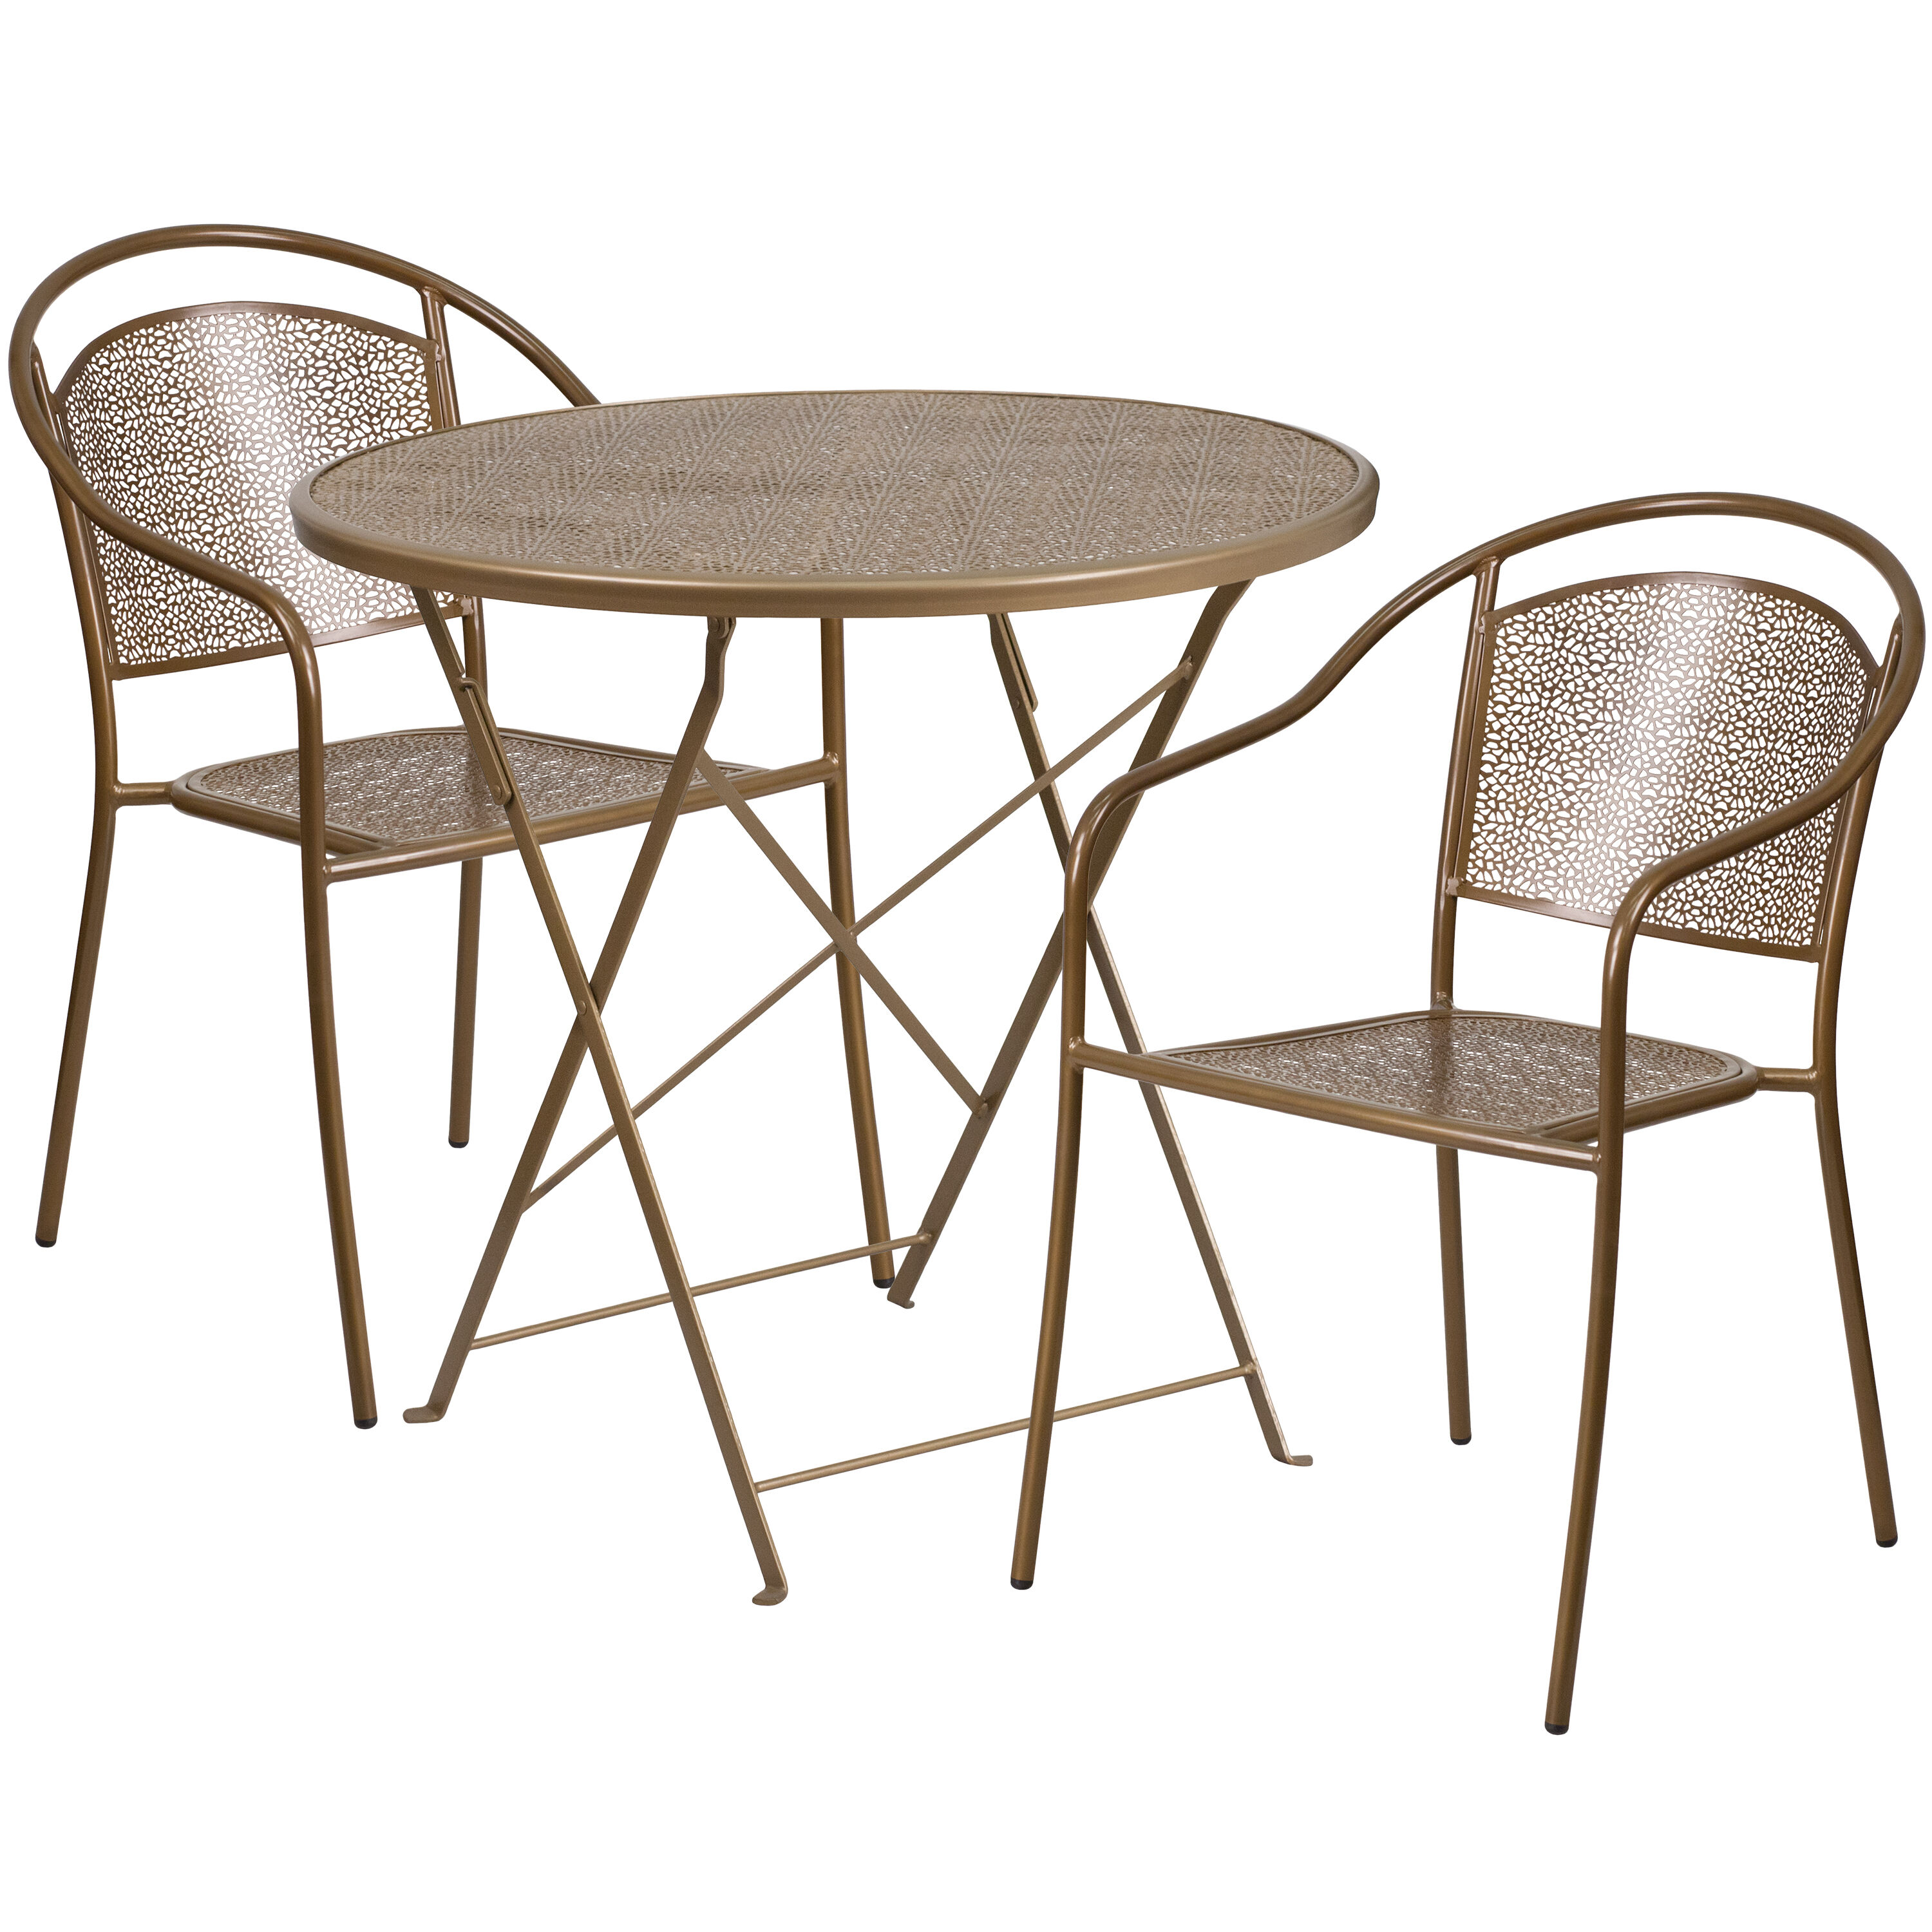 Folding patio chairs Extra Wide Images Folding Chairs Less 30rd Gold Fold Patio Set Co30rdf03chr2gdgg Foldingchairs4lesscom